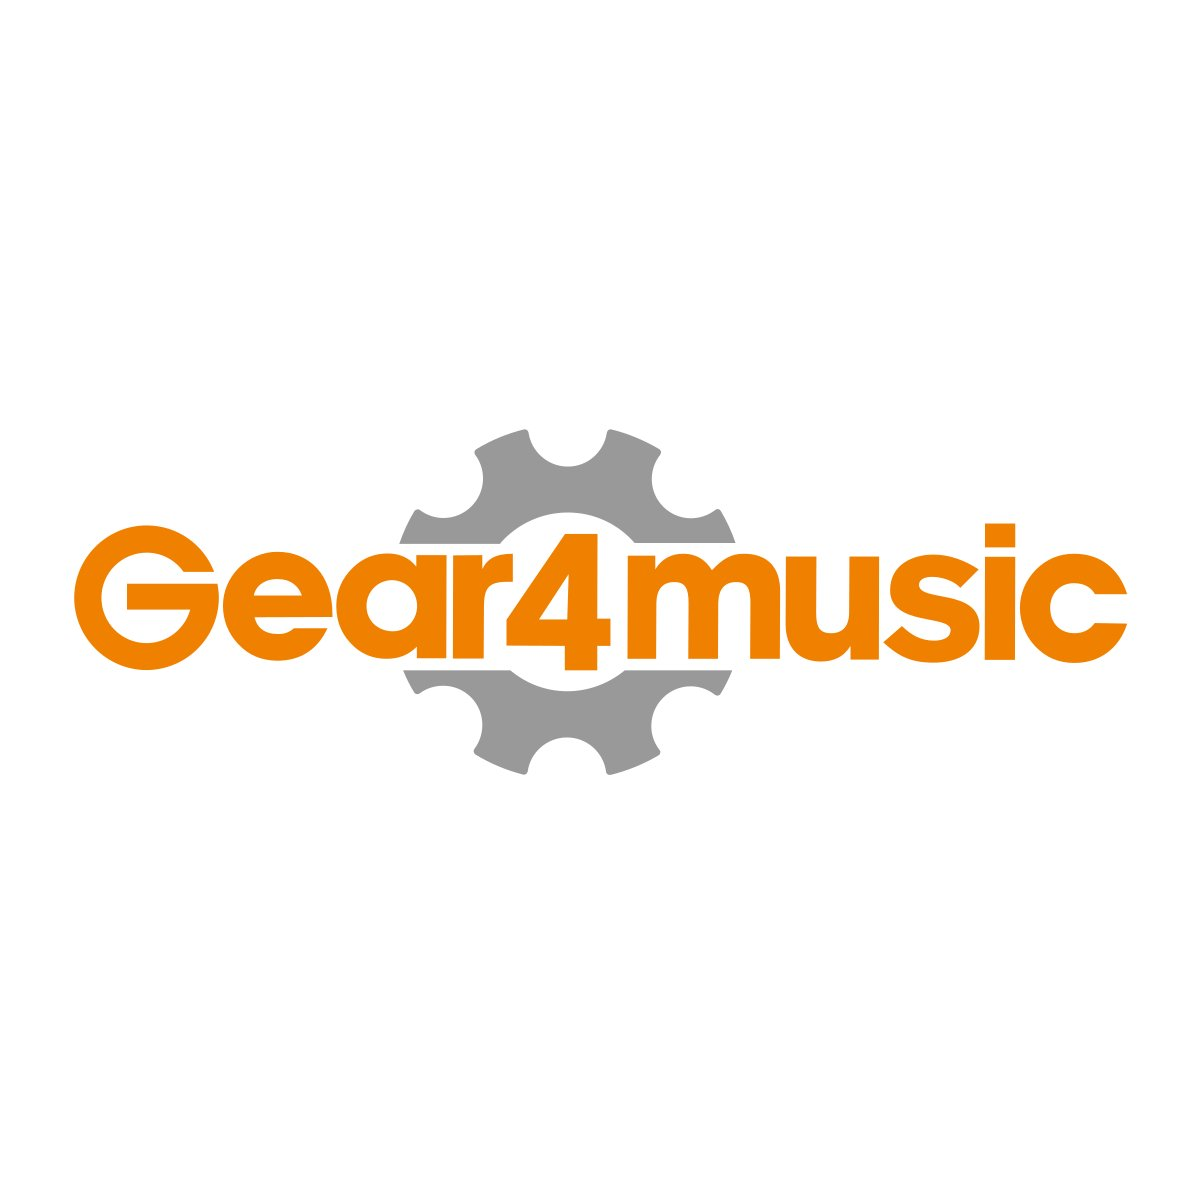 Accordéon Deluxe par Gear4music, 48 basses